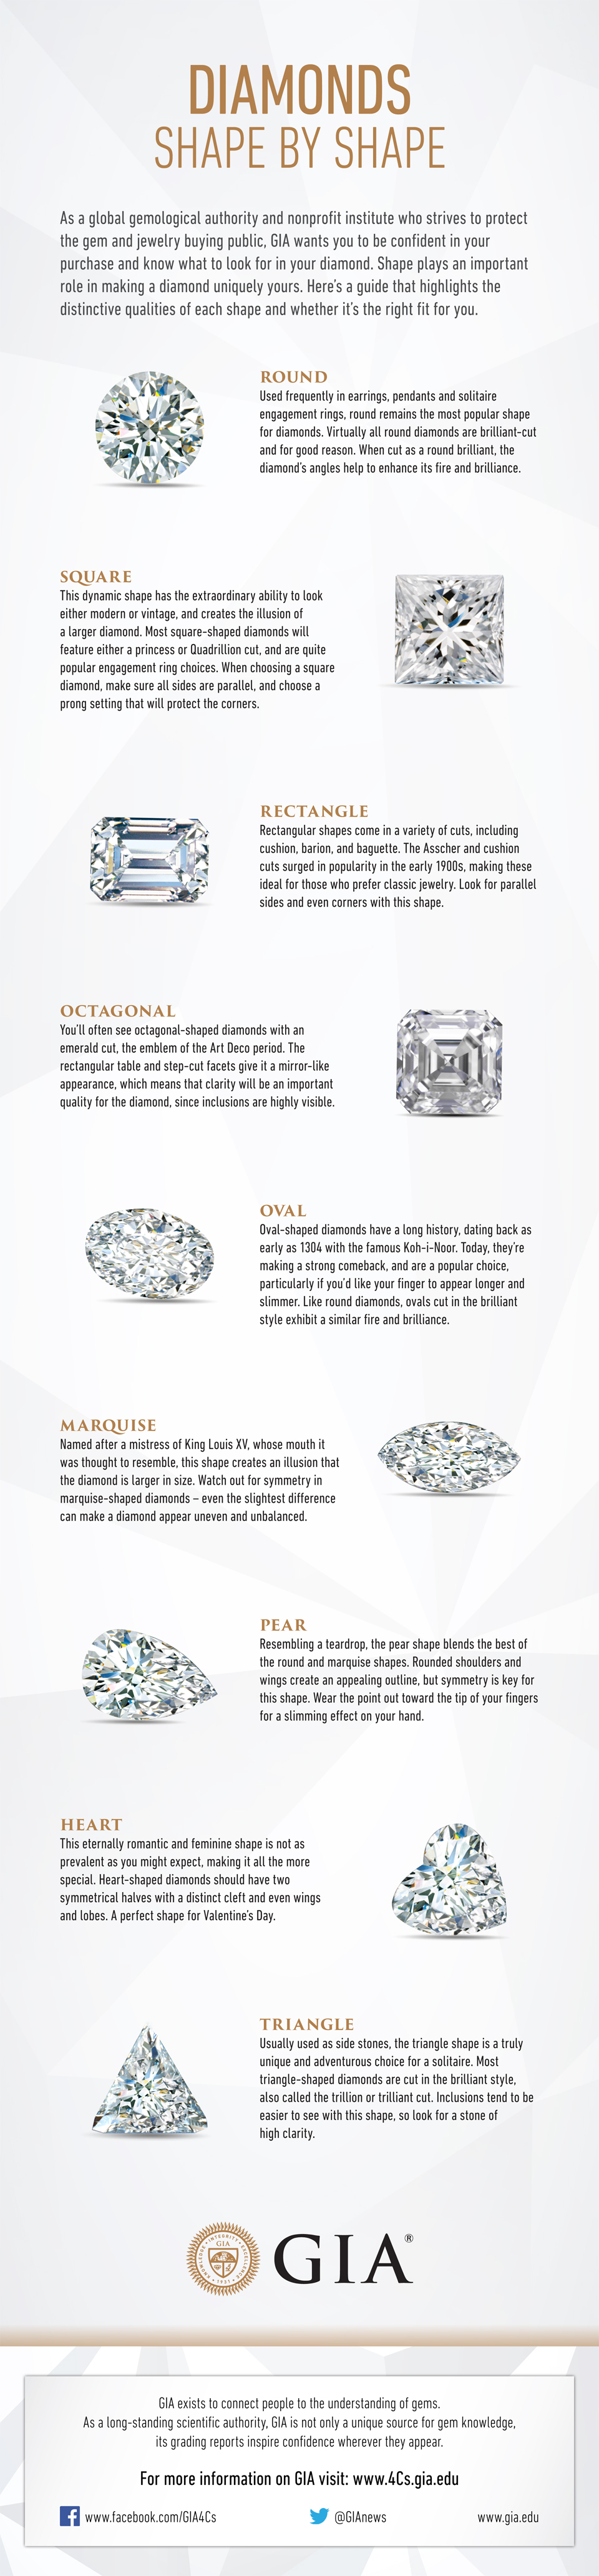 Courtesy of GIA    https://4cs.gia.edu/en-us/blog/about-diamond-shape/